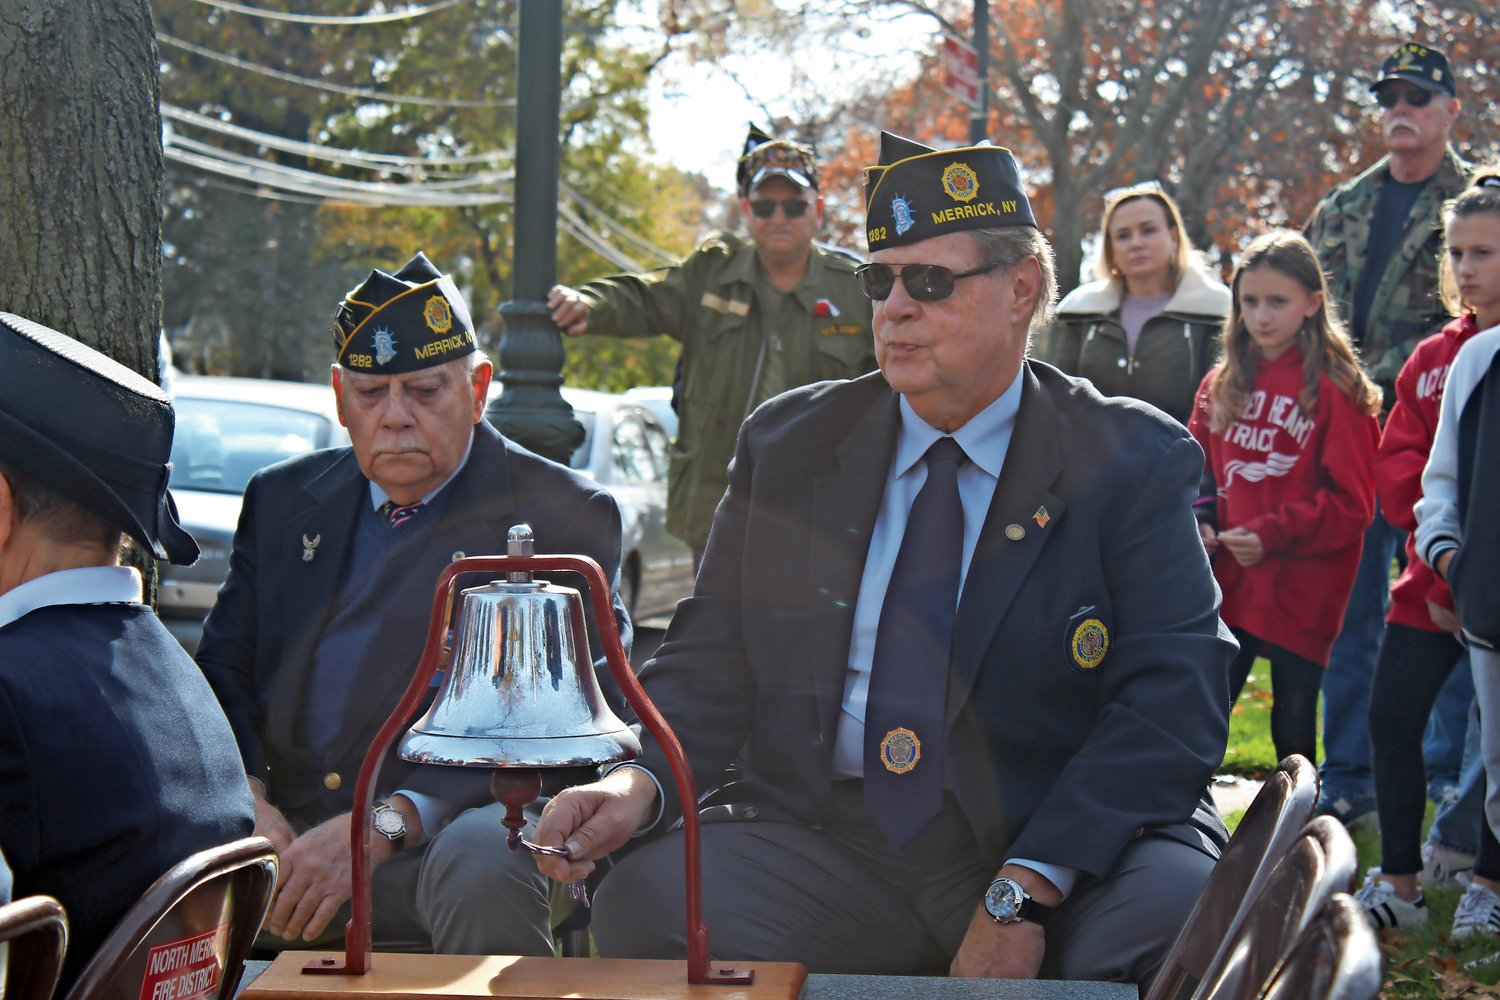 Post members Joe Ambrosino, left, and Lawrence Levy rung the bell for the Eleventh Hour ritual.